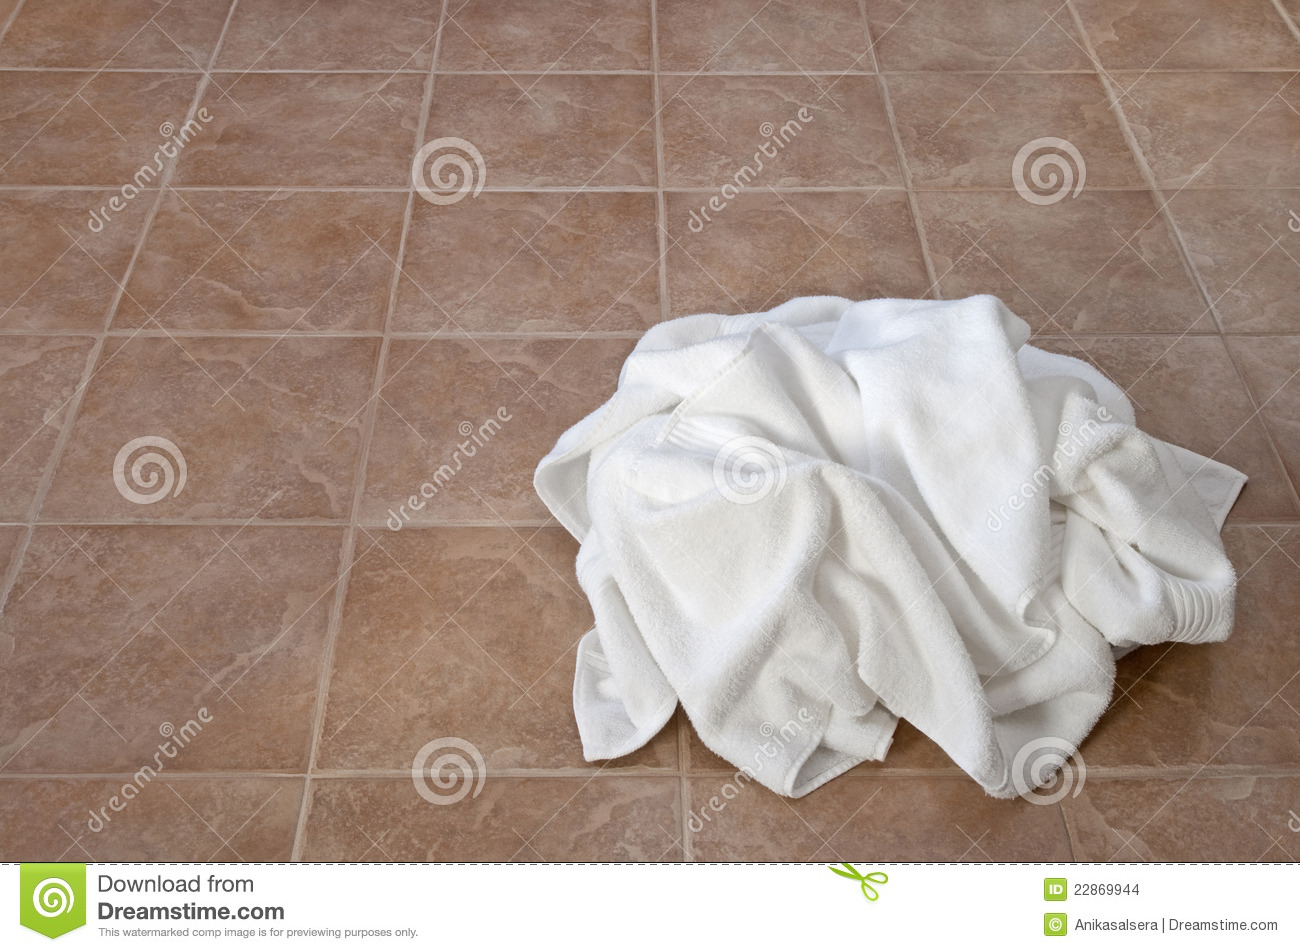 Creased white towels on ceramic floor stock images image for How to get towels white